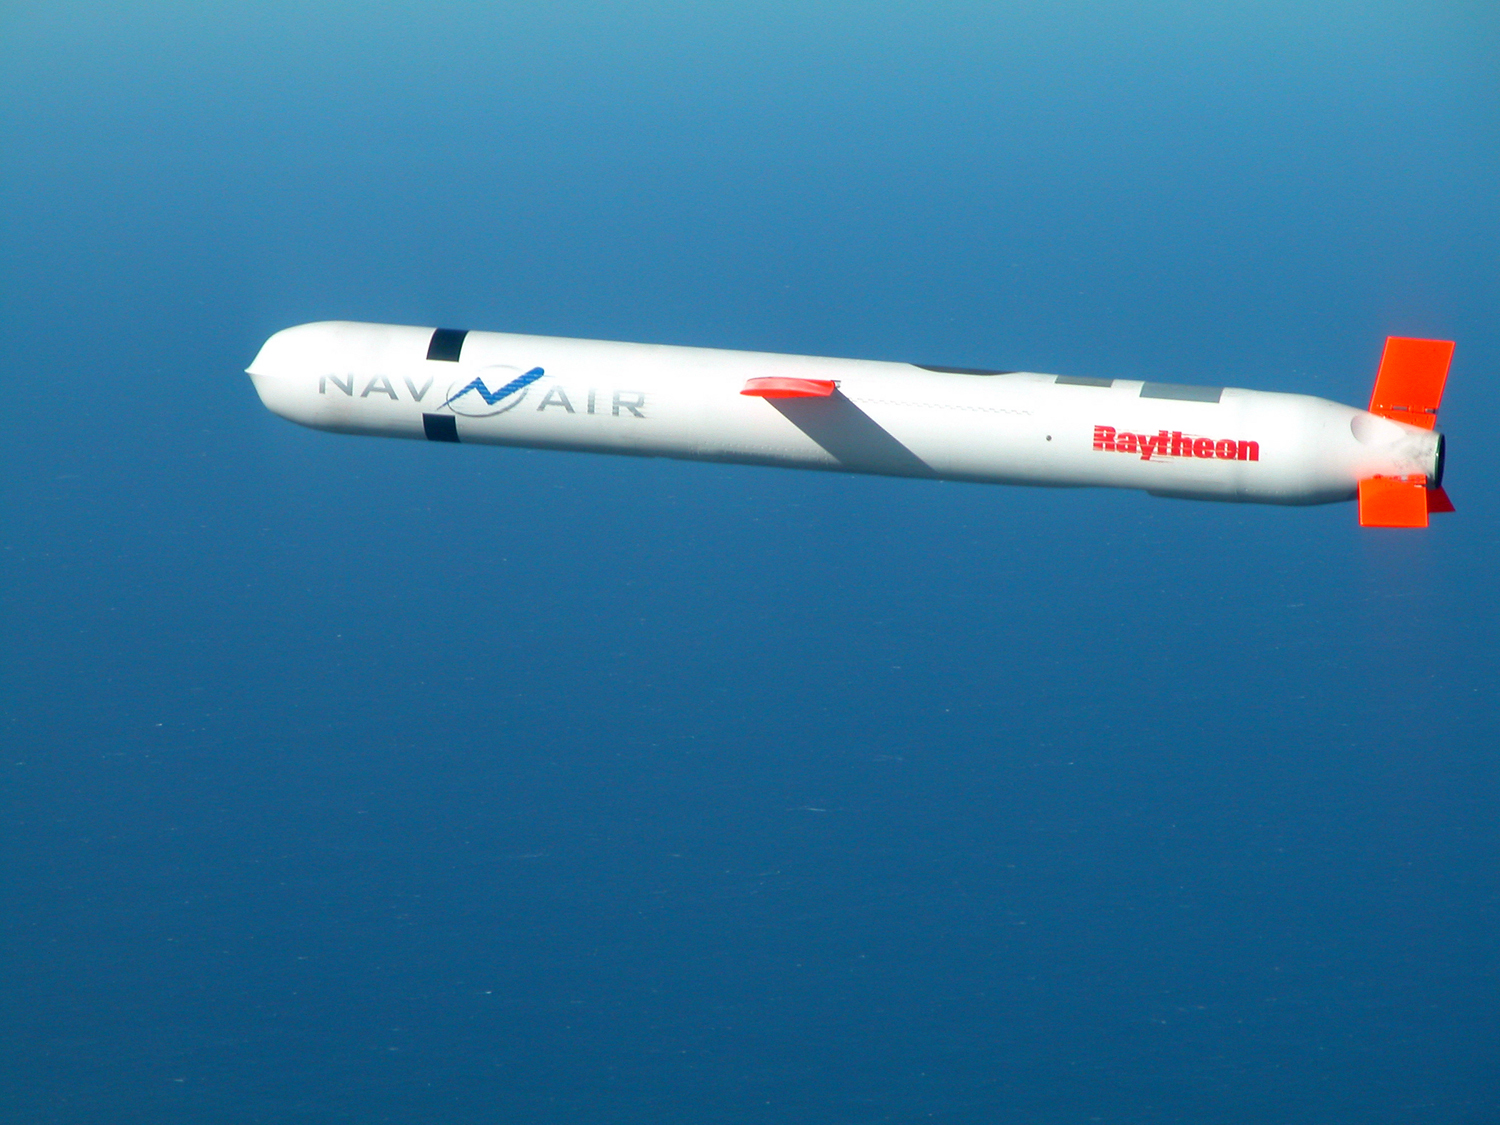 A Tomahawk cruise missile from a 2002 test firing off the coast of California. (Image via Wikimedia Commons)